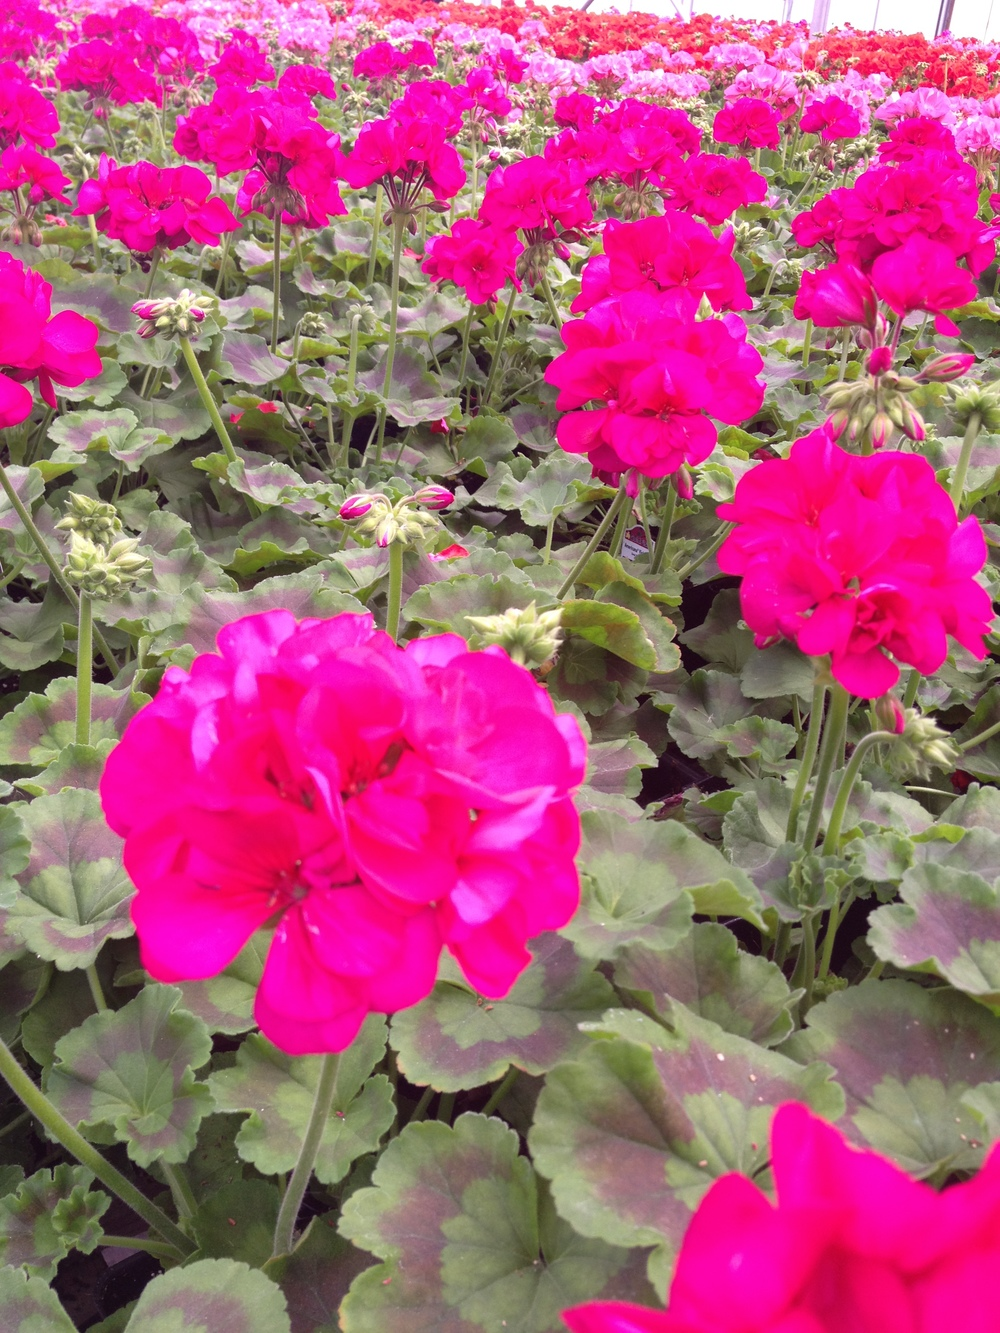 "Geraniums are our staple crop. We grow them in every size and color available and are committed to having the best geraniums that money can buy. Our 4.5"" geranium production is a huge part of our business as well as our tub geraniums available in 8"" and 12"" pots. For a premium item consider the Geranium Tree which can only be purchased at Schlegel Greenhouse and grows to up to 4 feet tall."